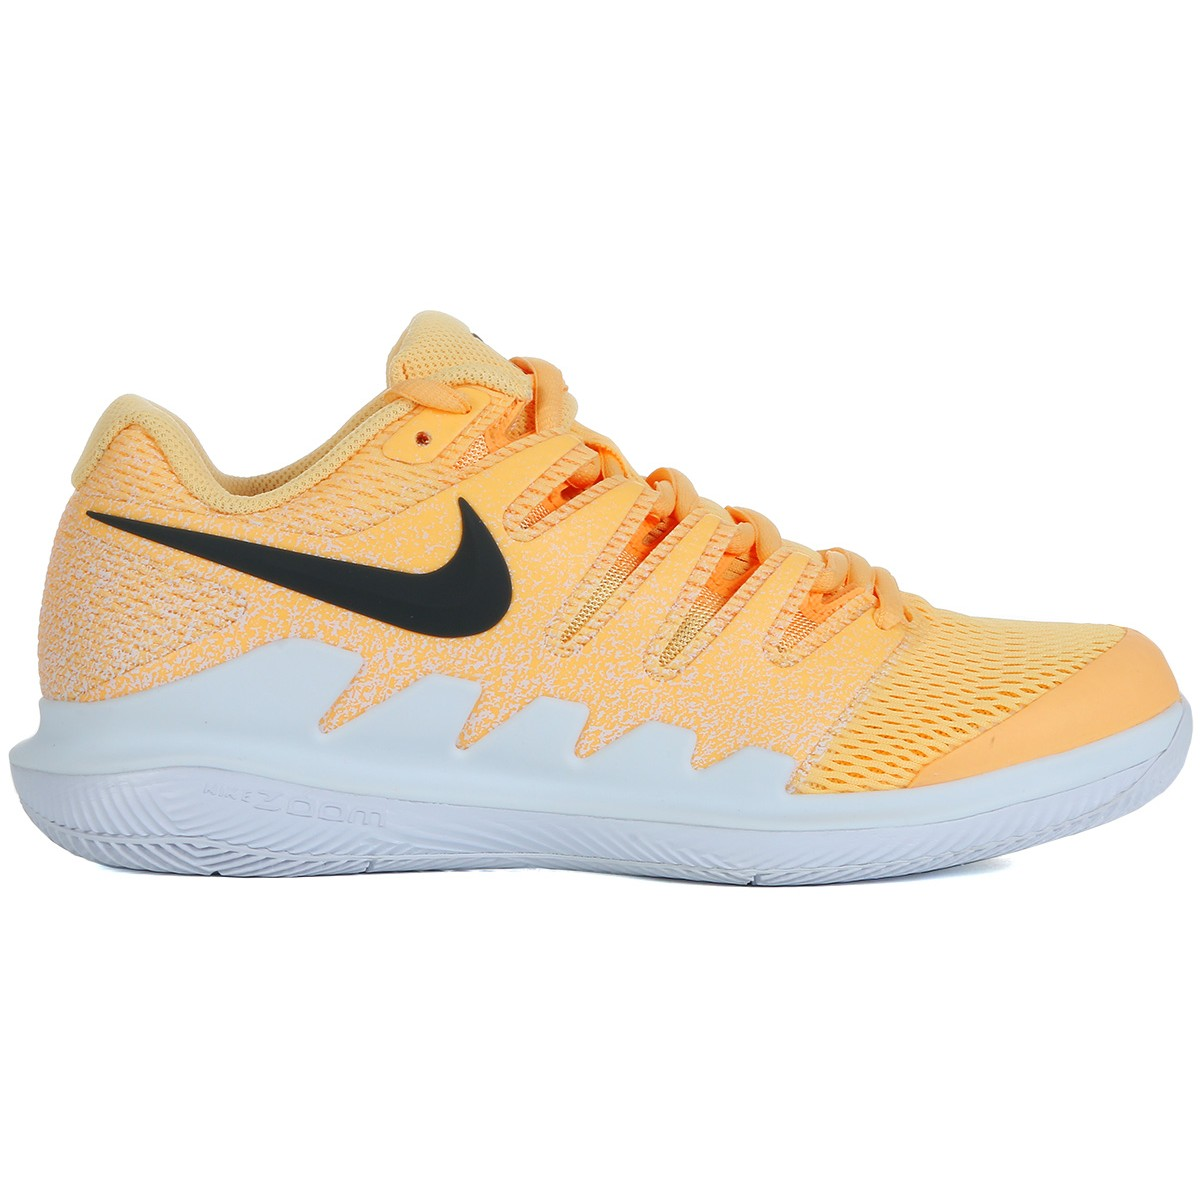 info for 290d8 9bc22 WOMEN'S NIKE AIR ZOOM VAPOR 10 ALL COURT SHOES - NIKE ...